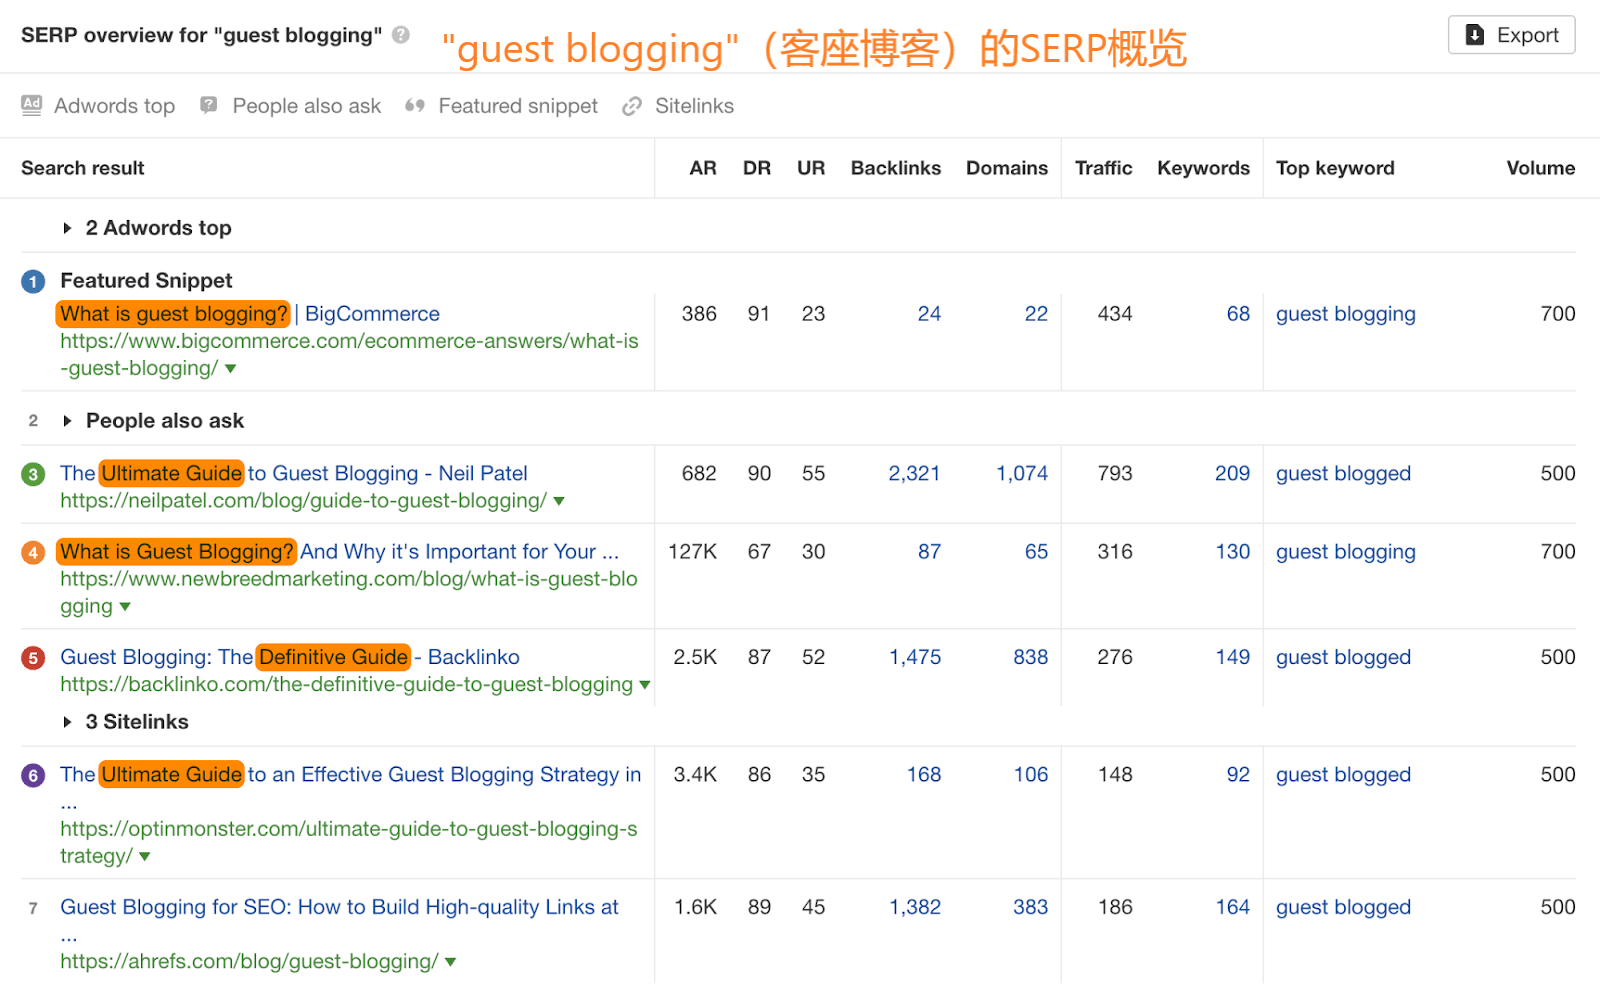 OK11 guest blogging content types 1